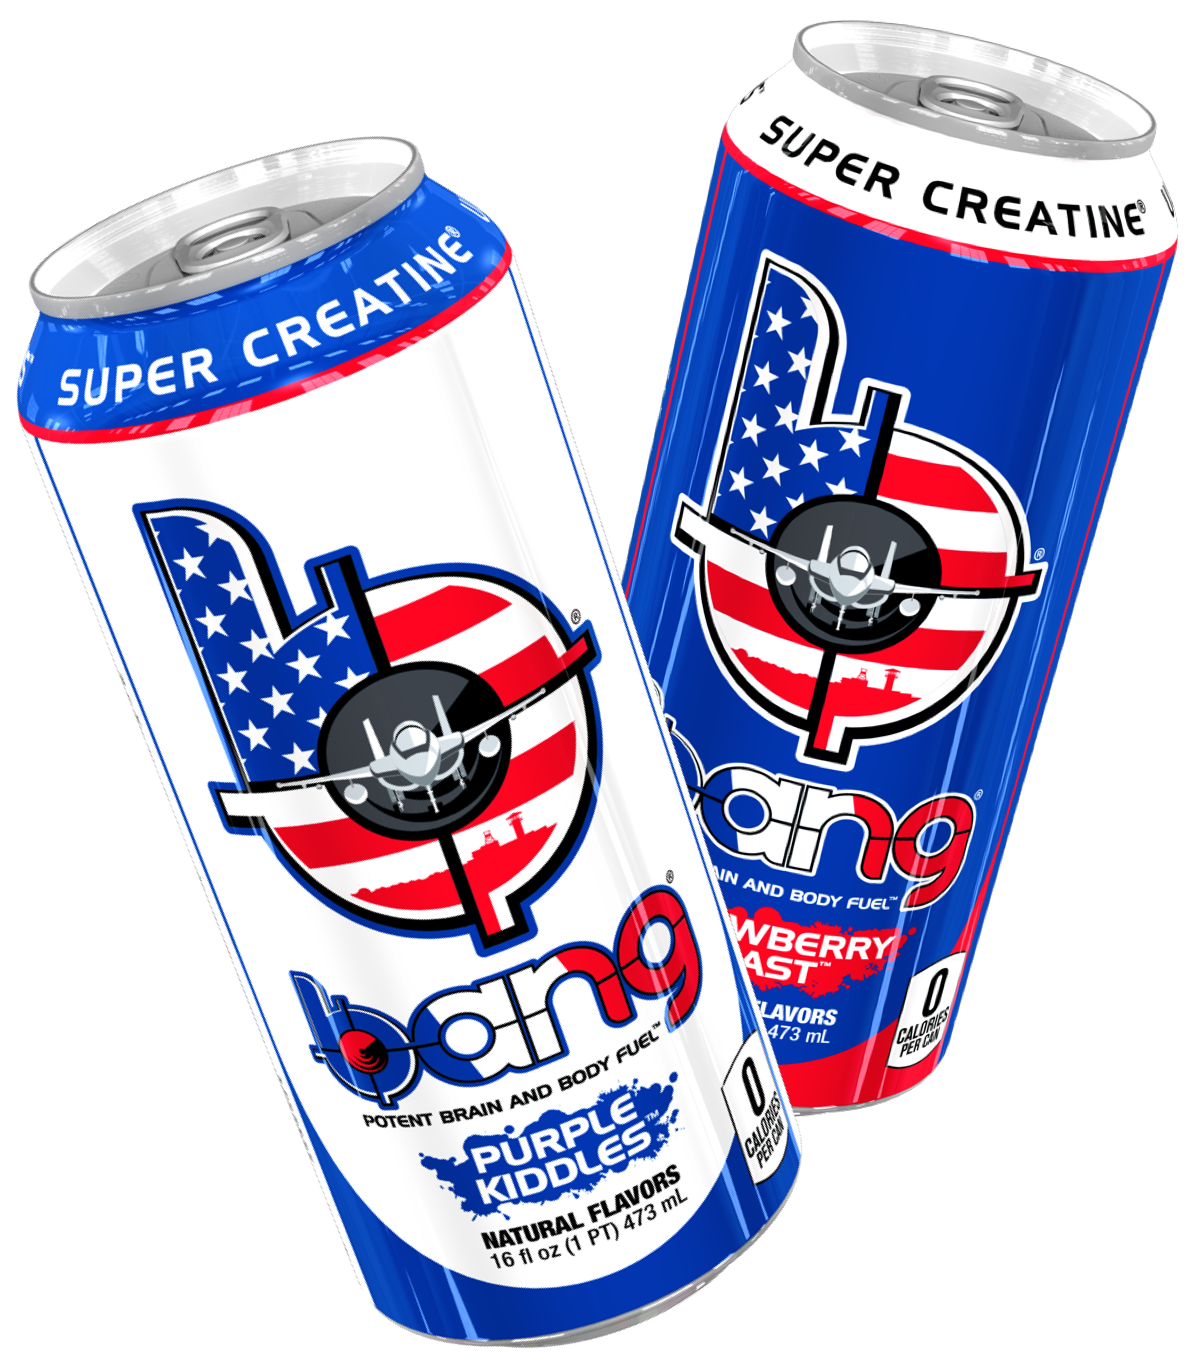 Bang Energy military exclusive cans. Flavors include Purple Kiddles and Strawberry Blast